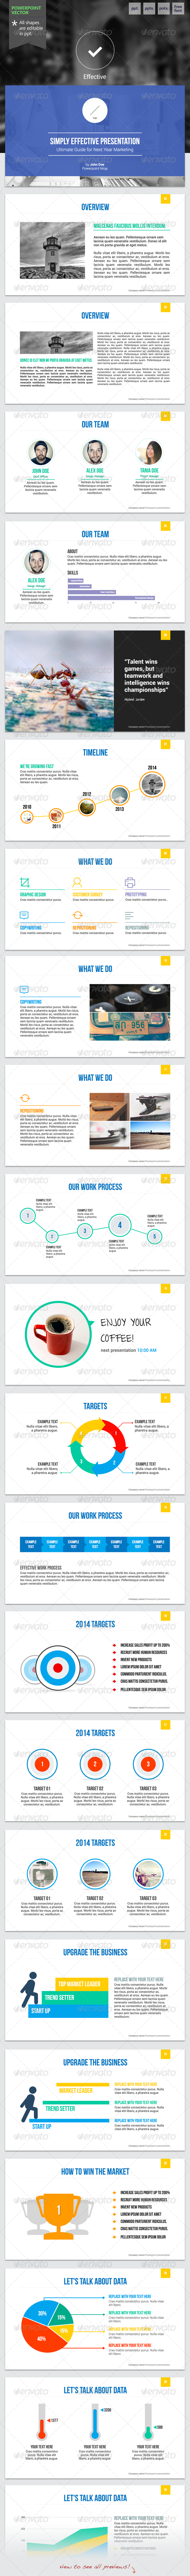 GraphicRiver Effective 2 Powerpoint Template 6344130